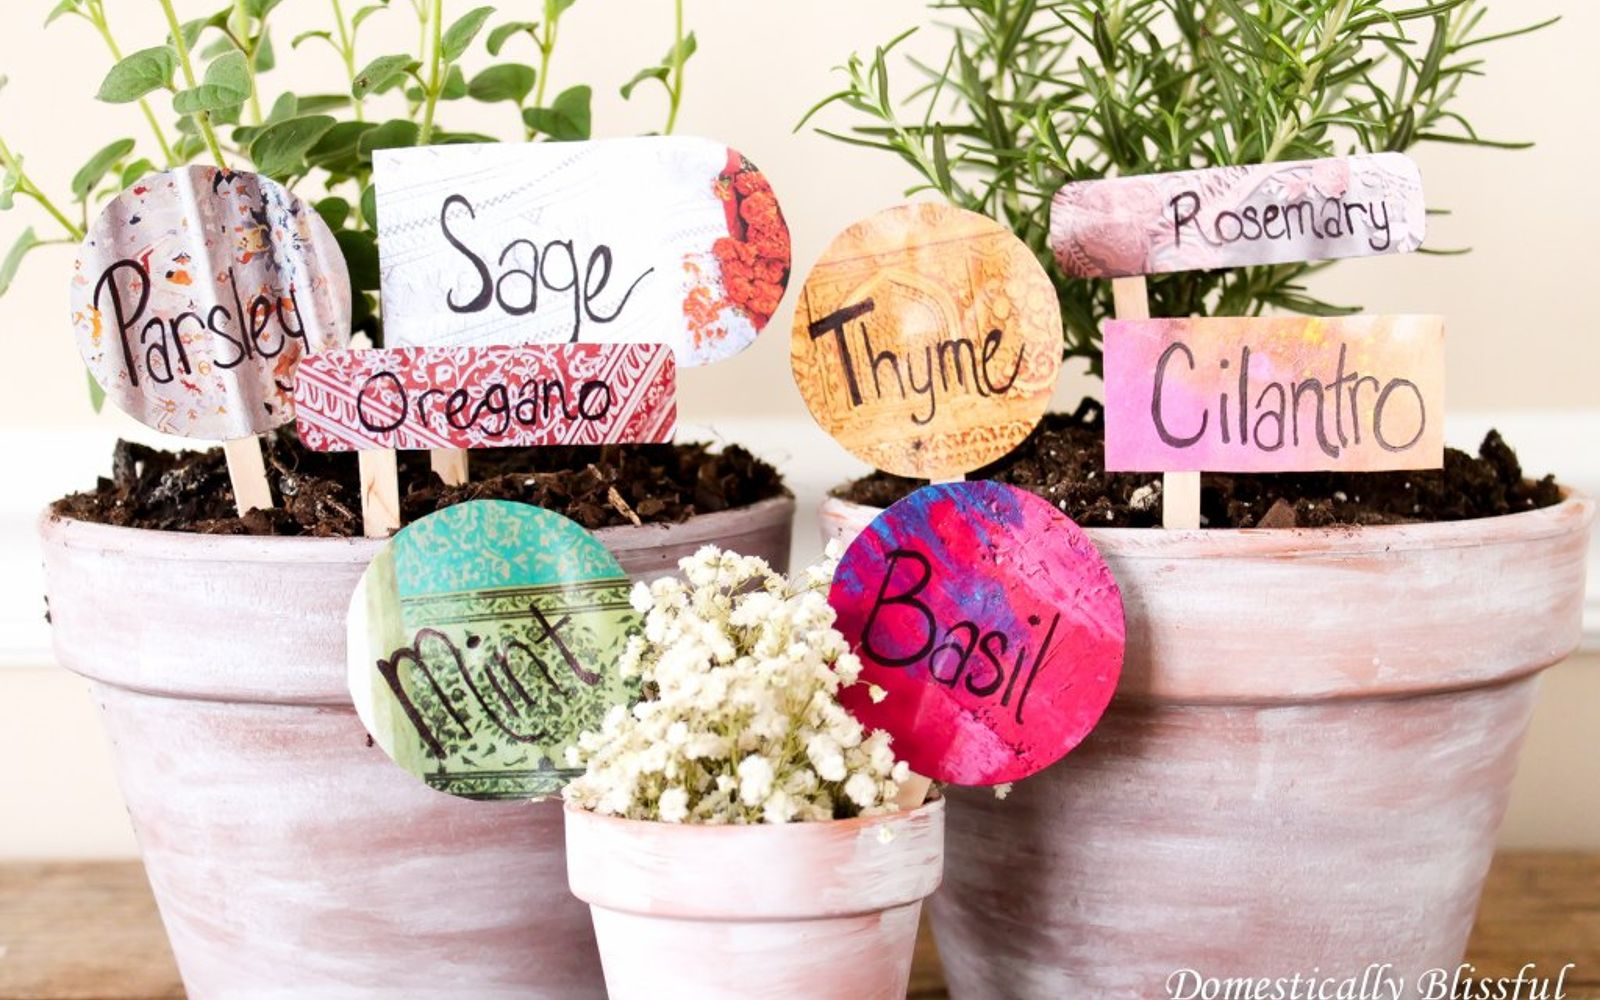 s 12 adorable plant markers from your junk drawer, gardening, repurposing upcycling, Cut shapes out of that old bent magazine